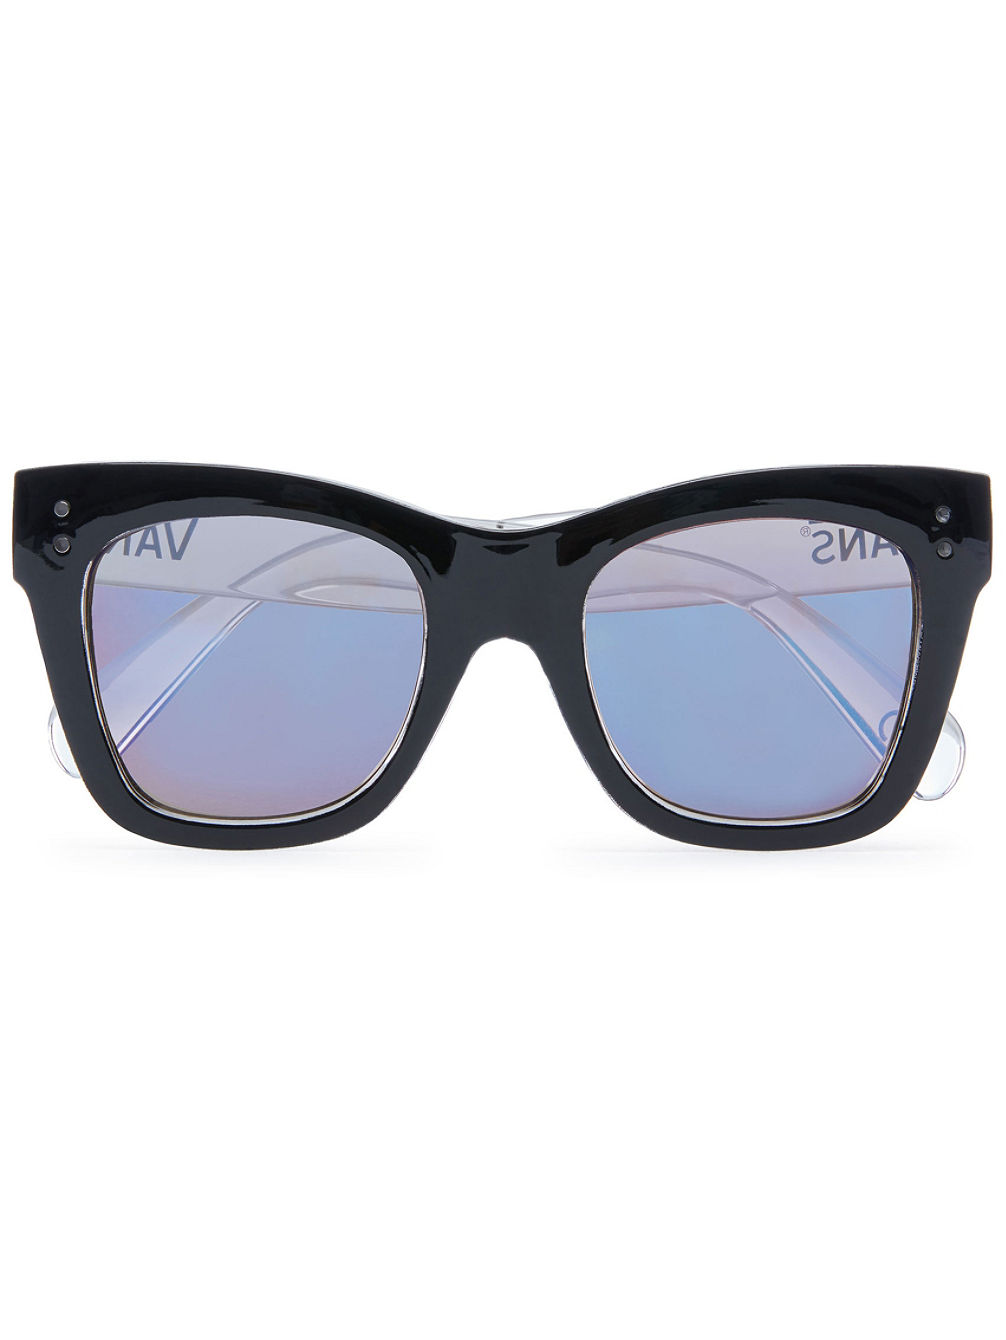 Sunny Dazy Black-Clear Sonnenbrille